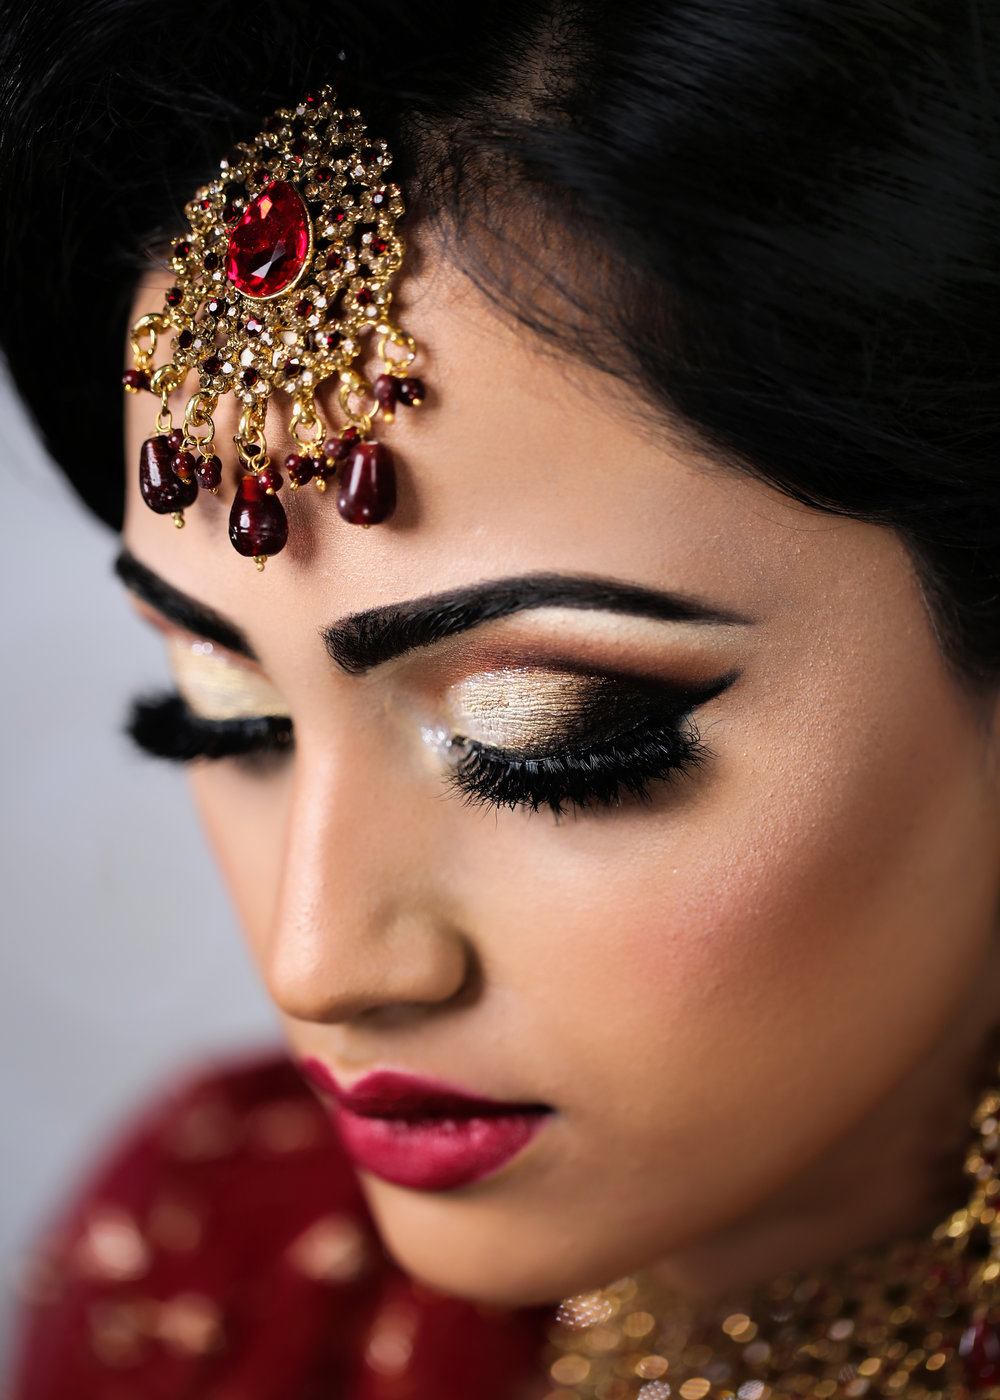 3 DAY - COMPLETE BRIDAL MAKEUP: - Summary:- 10 Makeup Looks- Day/Natural- Evening/Party- Registry/Walima- Classic Bridal- 3 Smokey Eye- Heavy Bridal- Media & Photographic MakeupFEES: £850